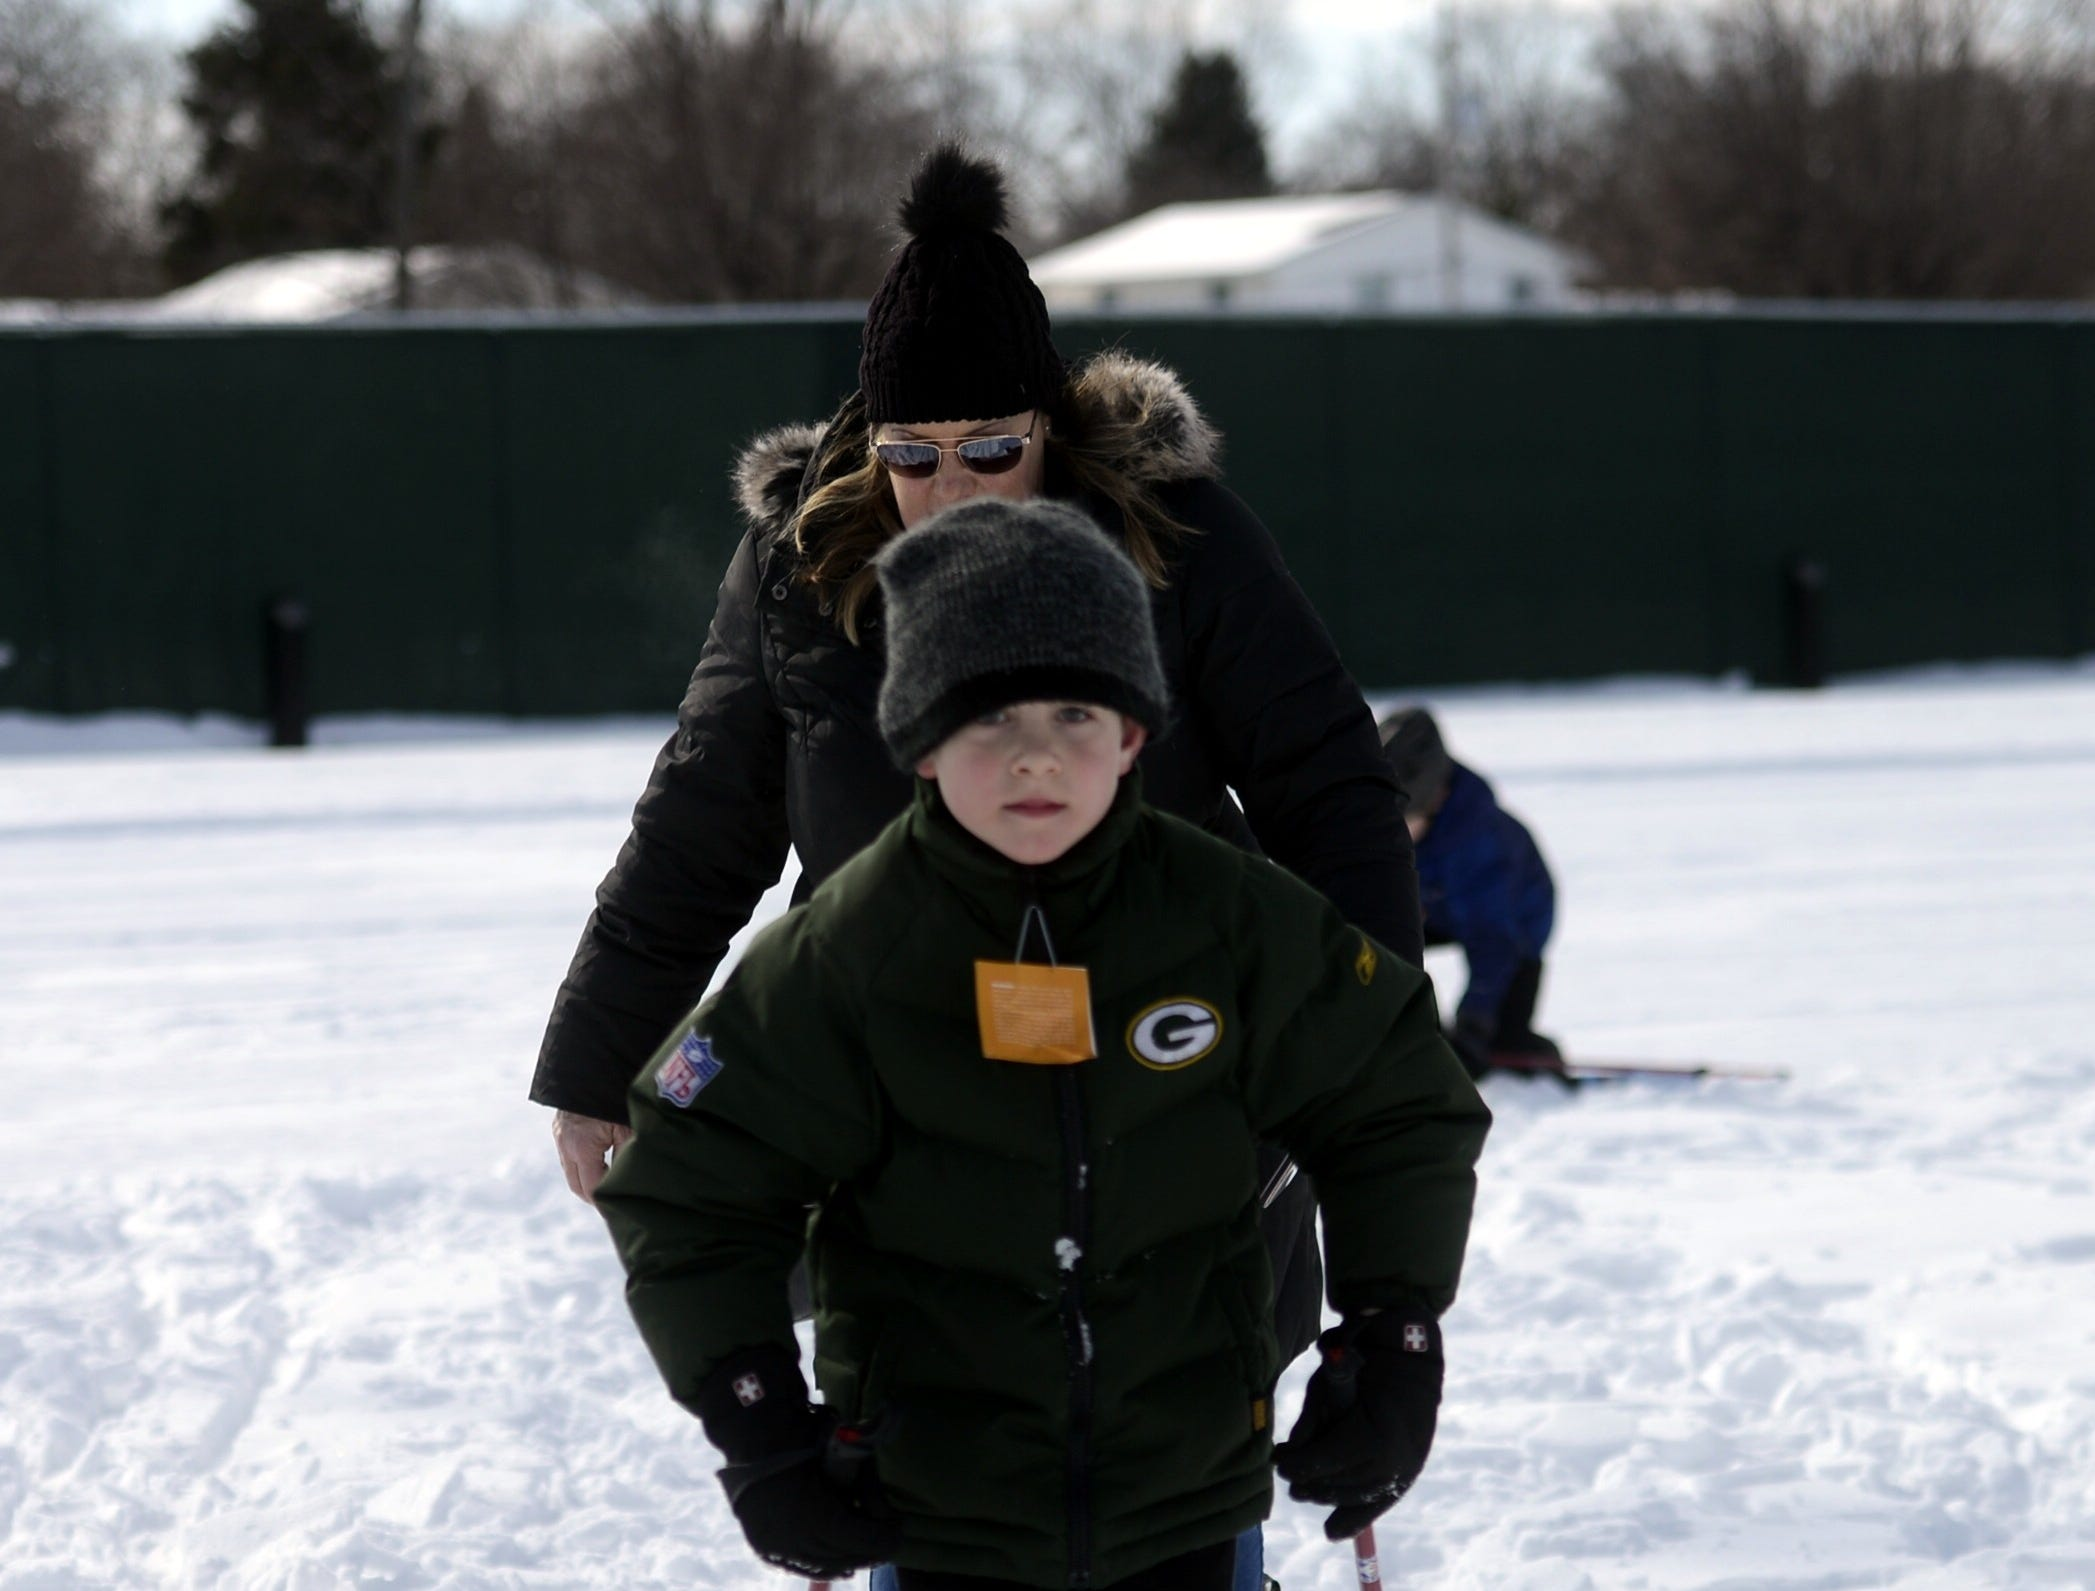 Dennis Schlies, 7, of Greenleaf tried cross country skiing during the Titletown Winter Games on Saturday, Feb. 16, 2019.